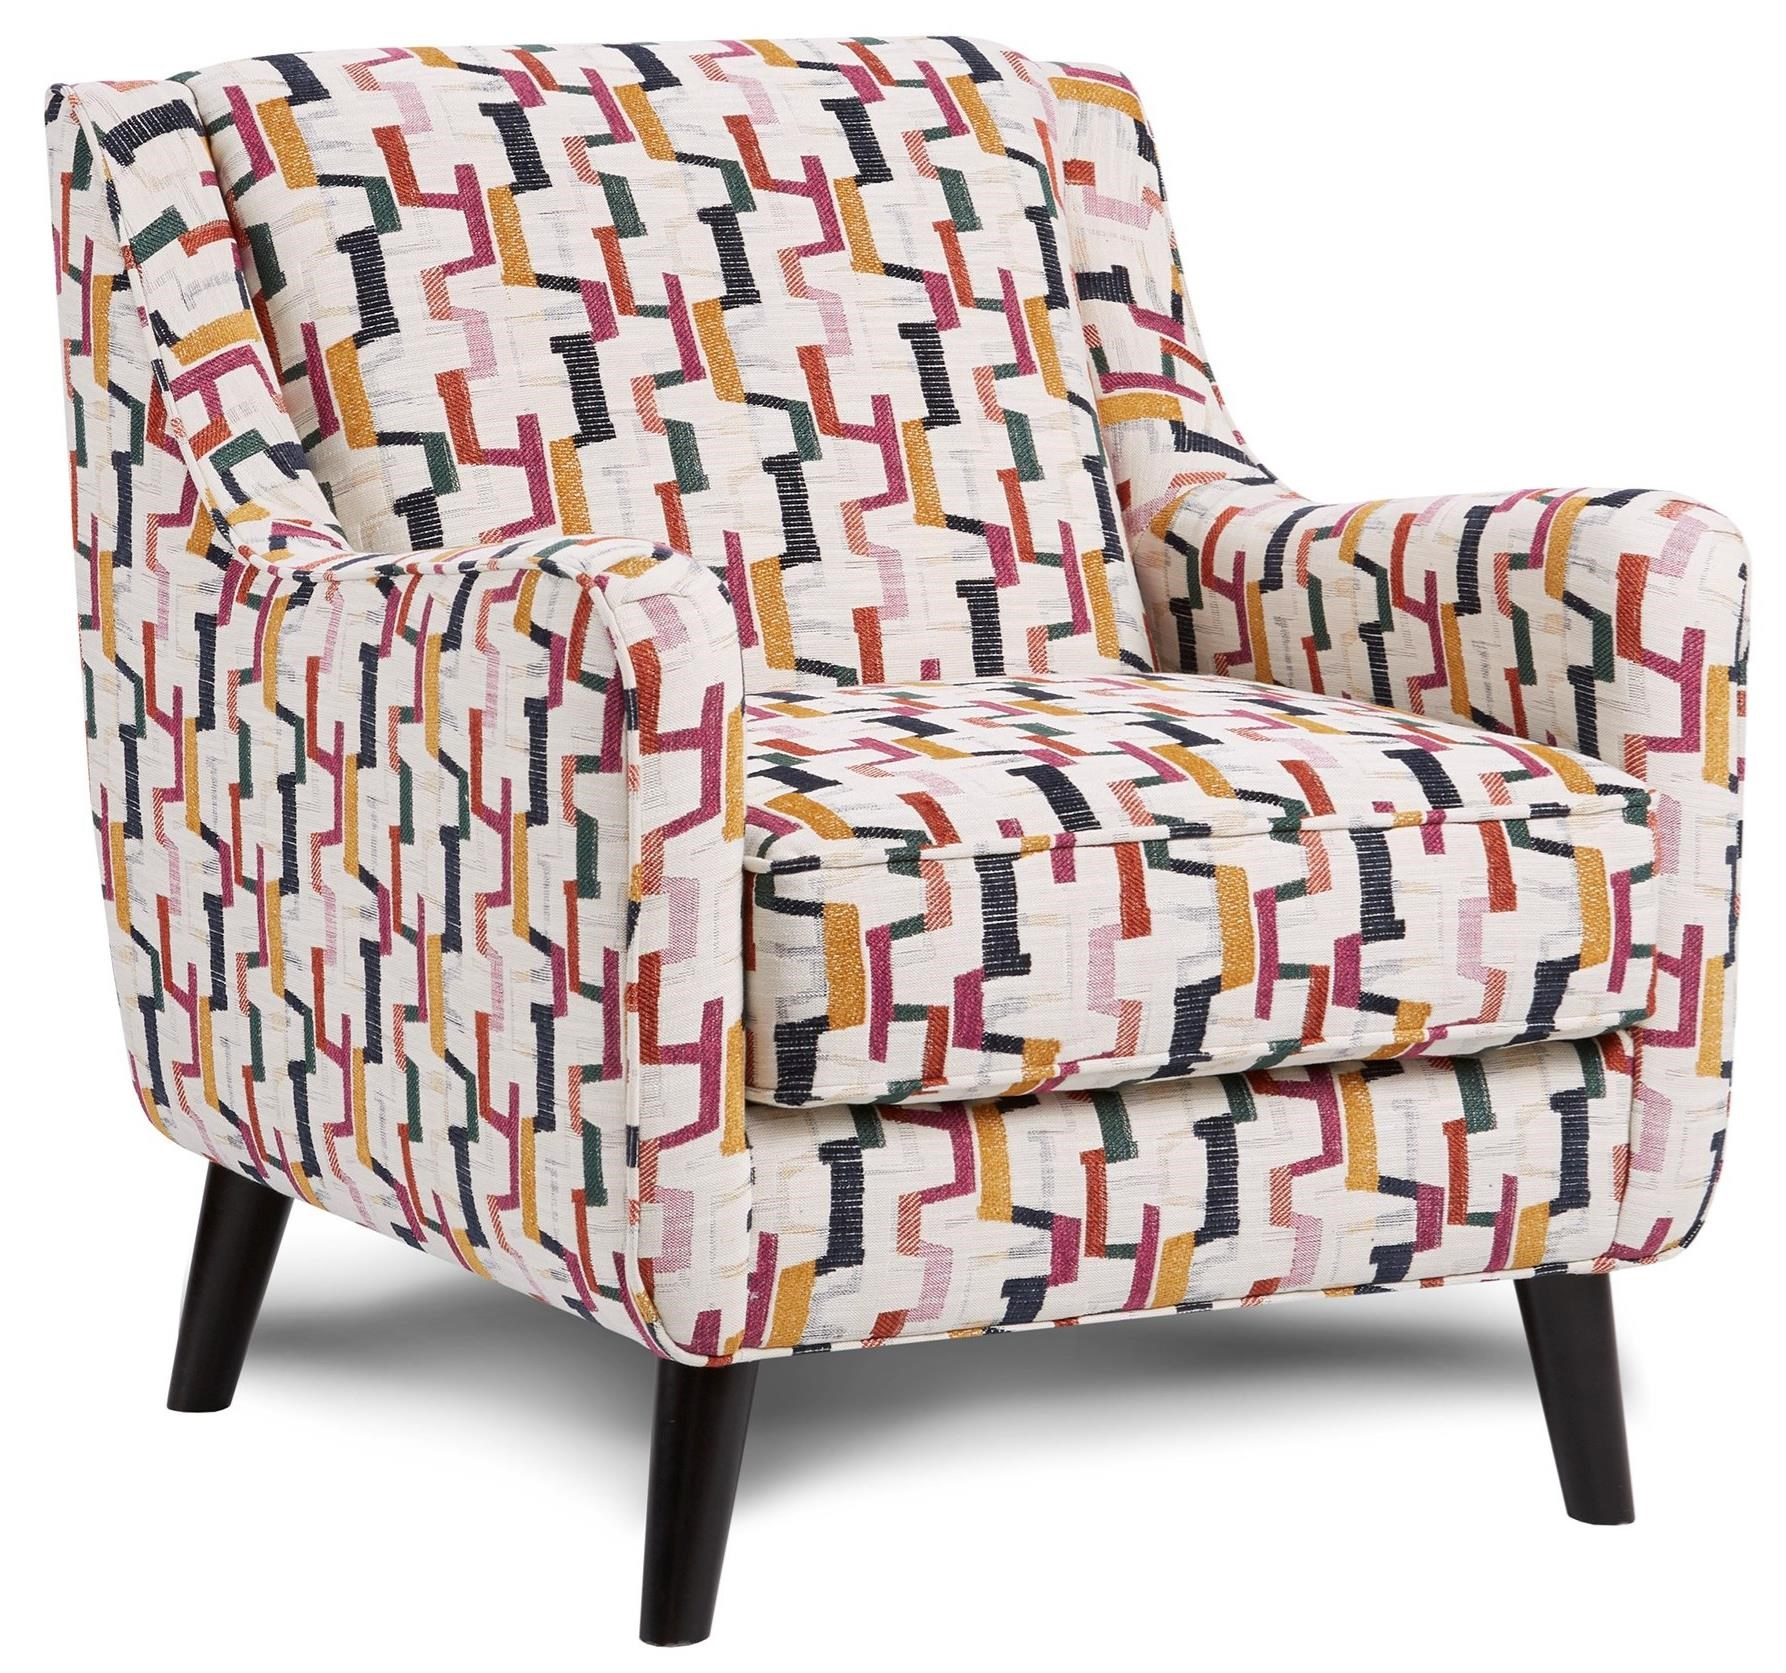 240 Chair by FN at Lindy's Furniture Company